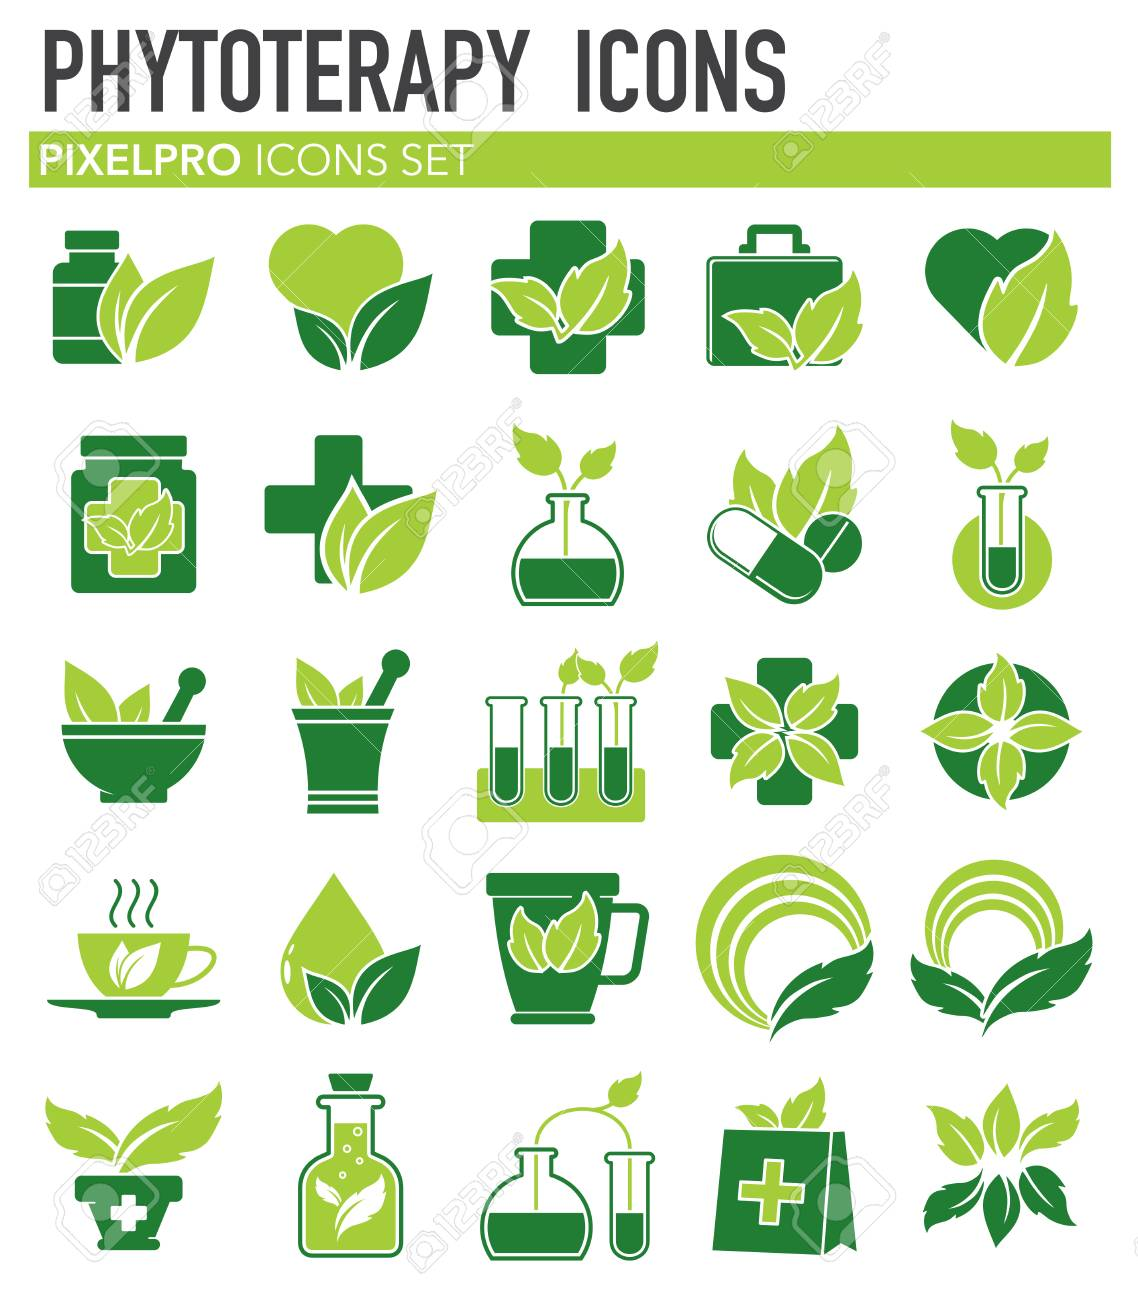 Phytoterapy icons set on white background for graphic and web design. Simple vector sign. Internet concept symbol for website button or mobile app. - 119847740